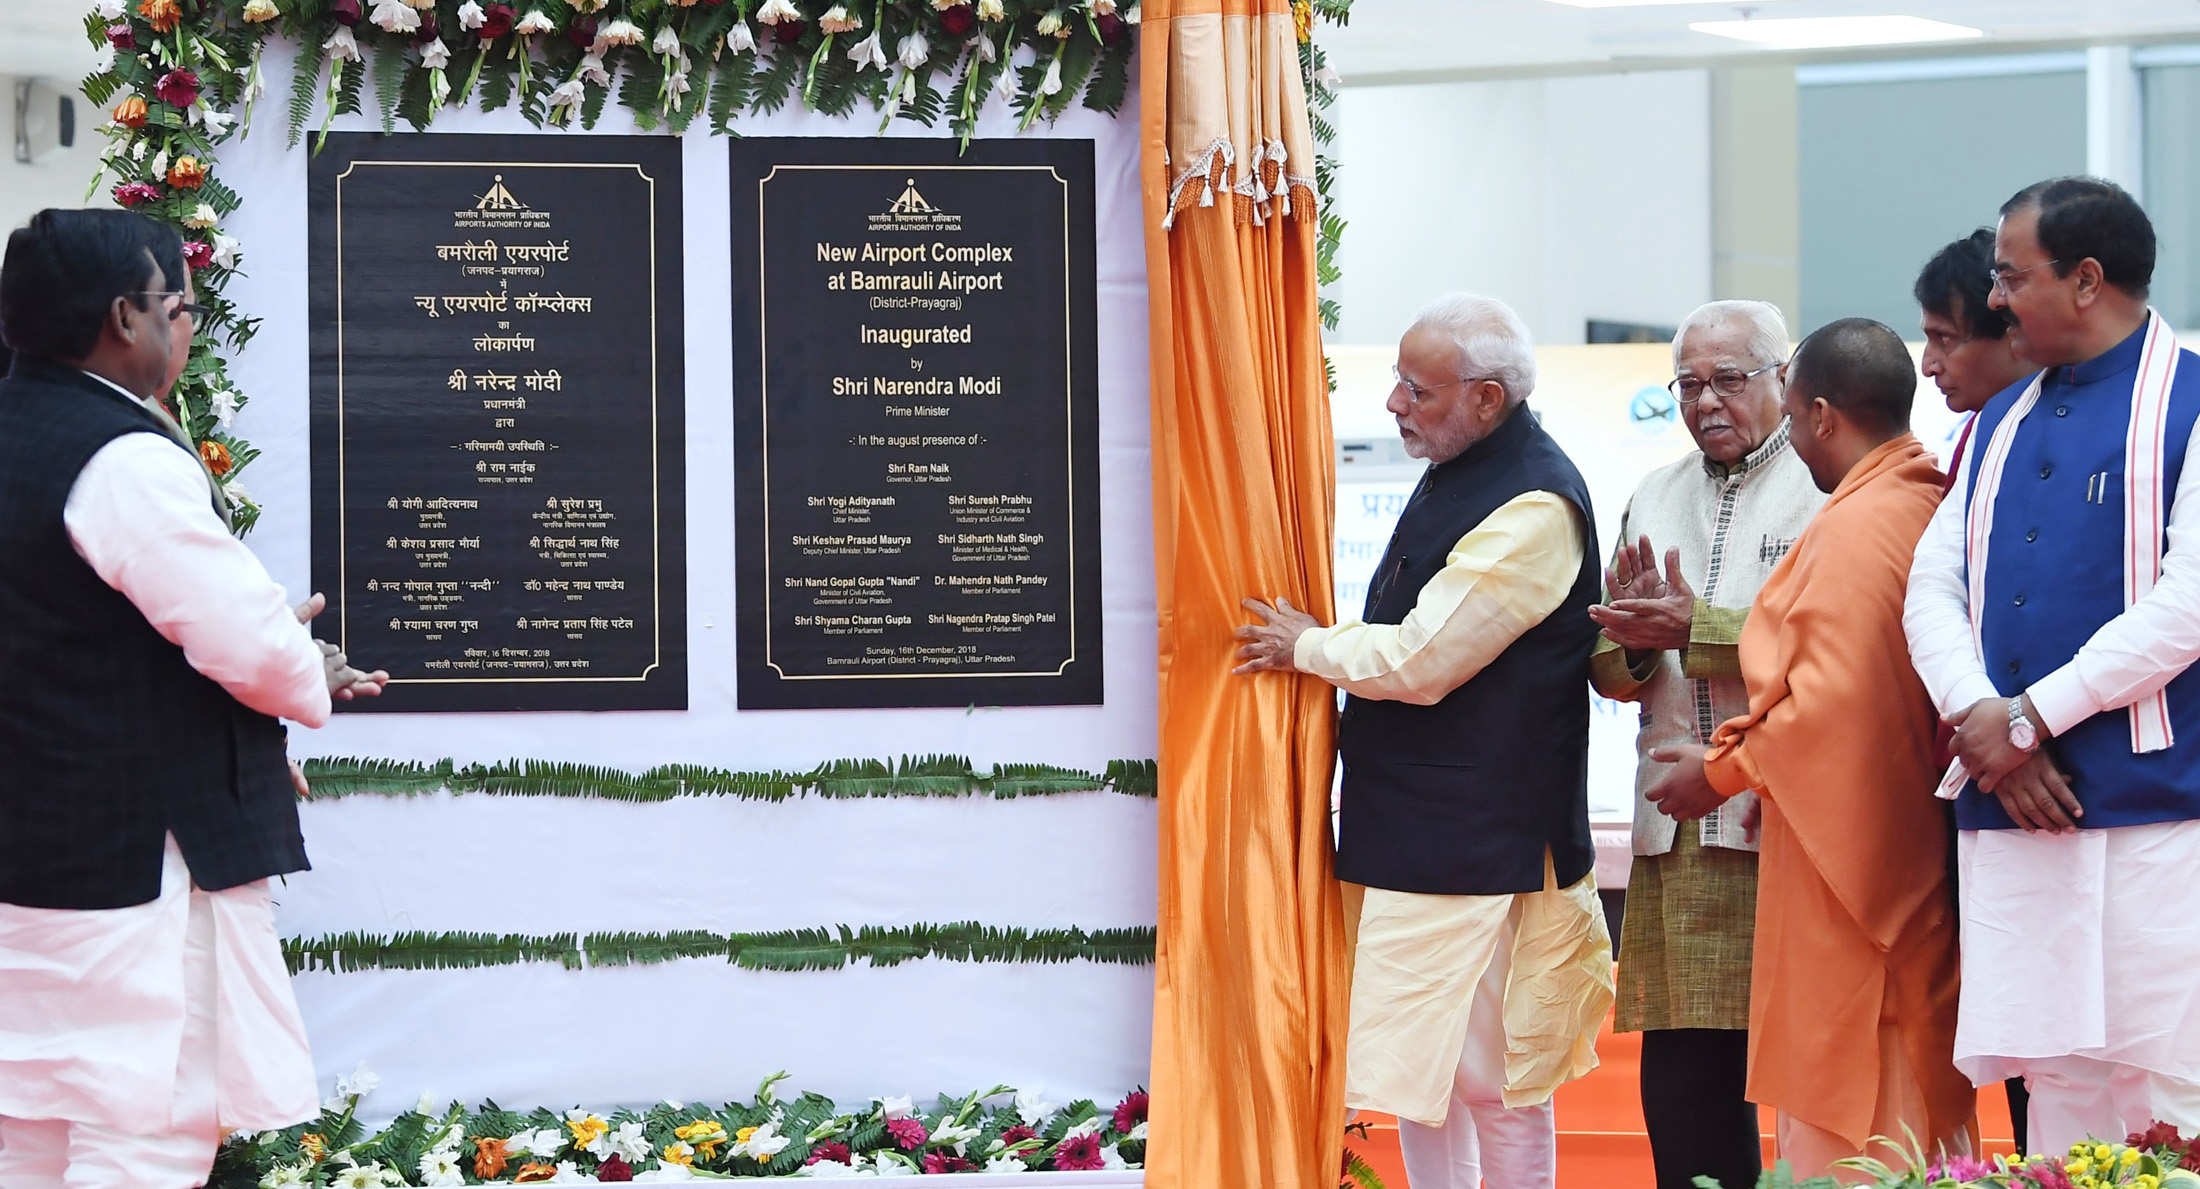 Prime Minister Narendra Modi inaugurating the new airport at Bamrauli in Prayagraj Uttar Pradesh. The Governor of Uttar Pradesh Ram Naik, the Minister for Commerce & Industry and Civil Aviation Suresh Prabhakar Prabhu and the Chief Minister of Uttar Pradesh Yogi Adityanath are also seen. (Photo courtesy: PIB